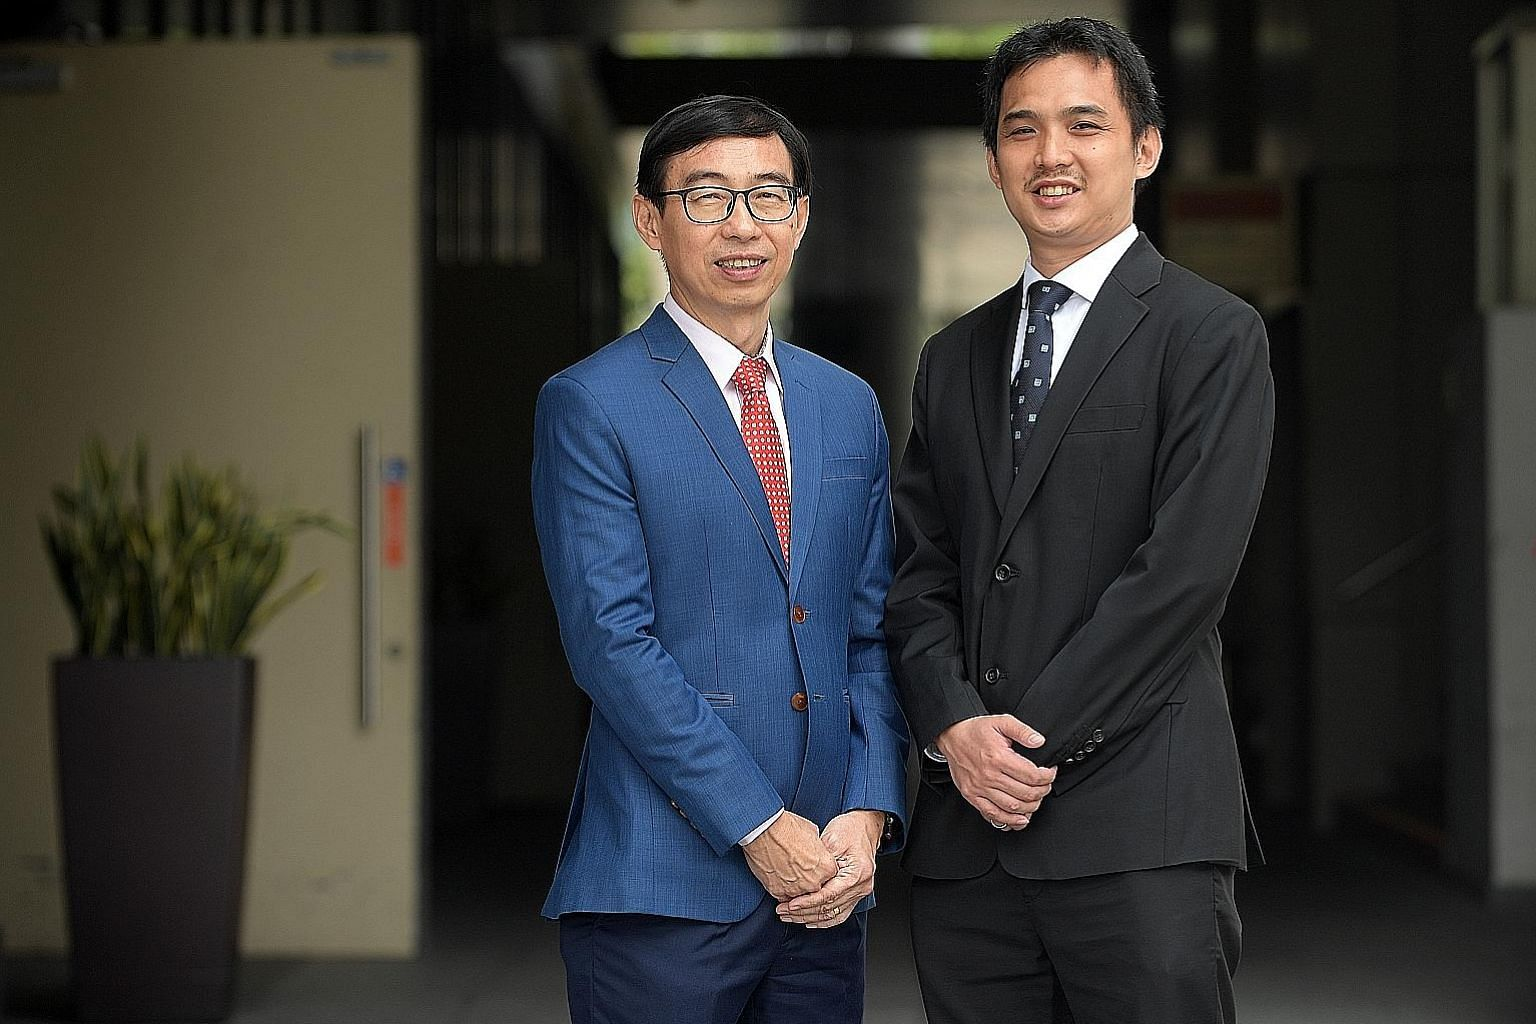 Mr Lim Hock Heng (far left), vice-president and site director at GSK's Pharmaceuticals Supply Chain Singapore, with GSK senior chemical engineer Charles Wong. Mr Wong had attended a Project Zodiac course, a key leadership training programme under the